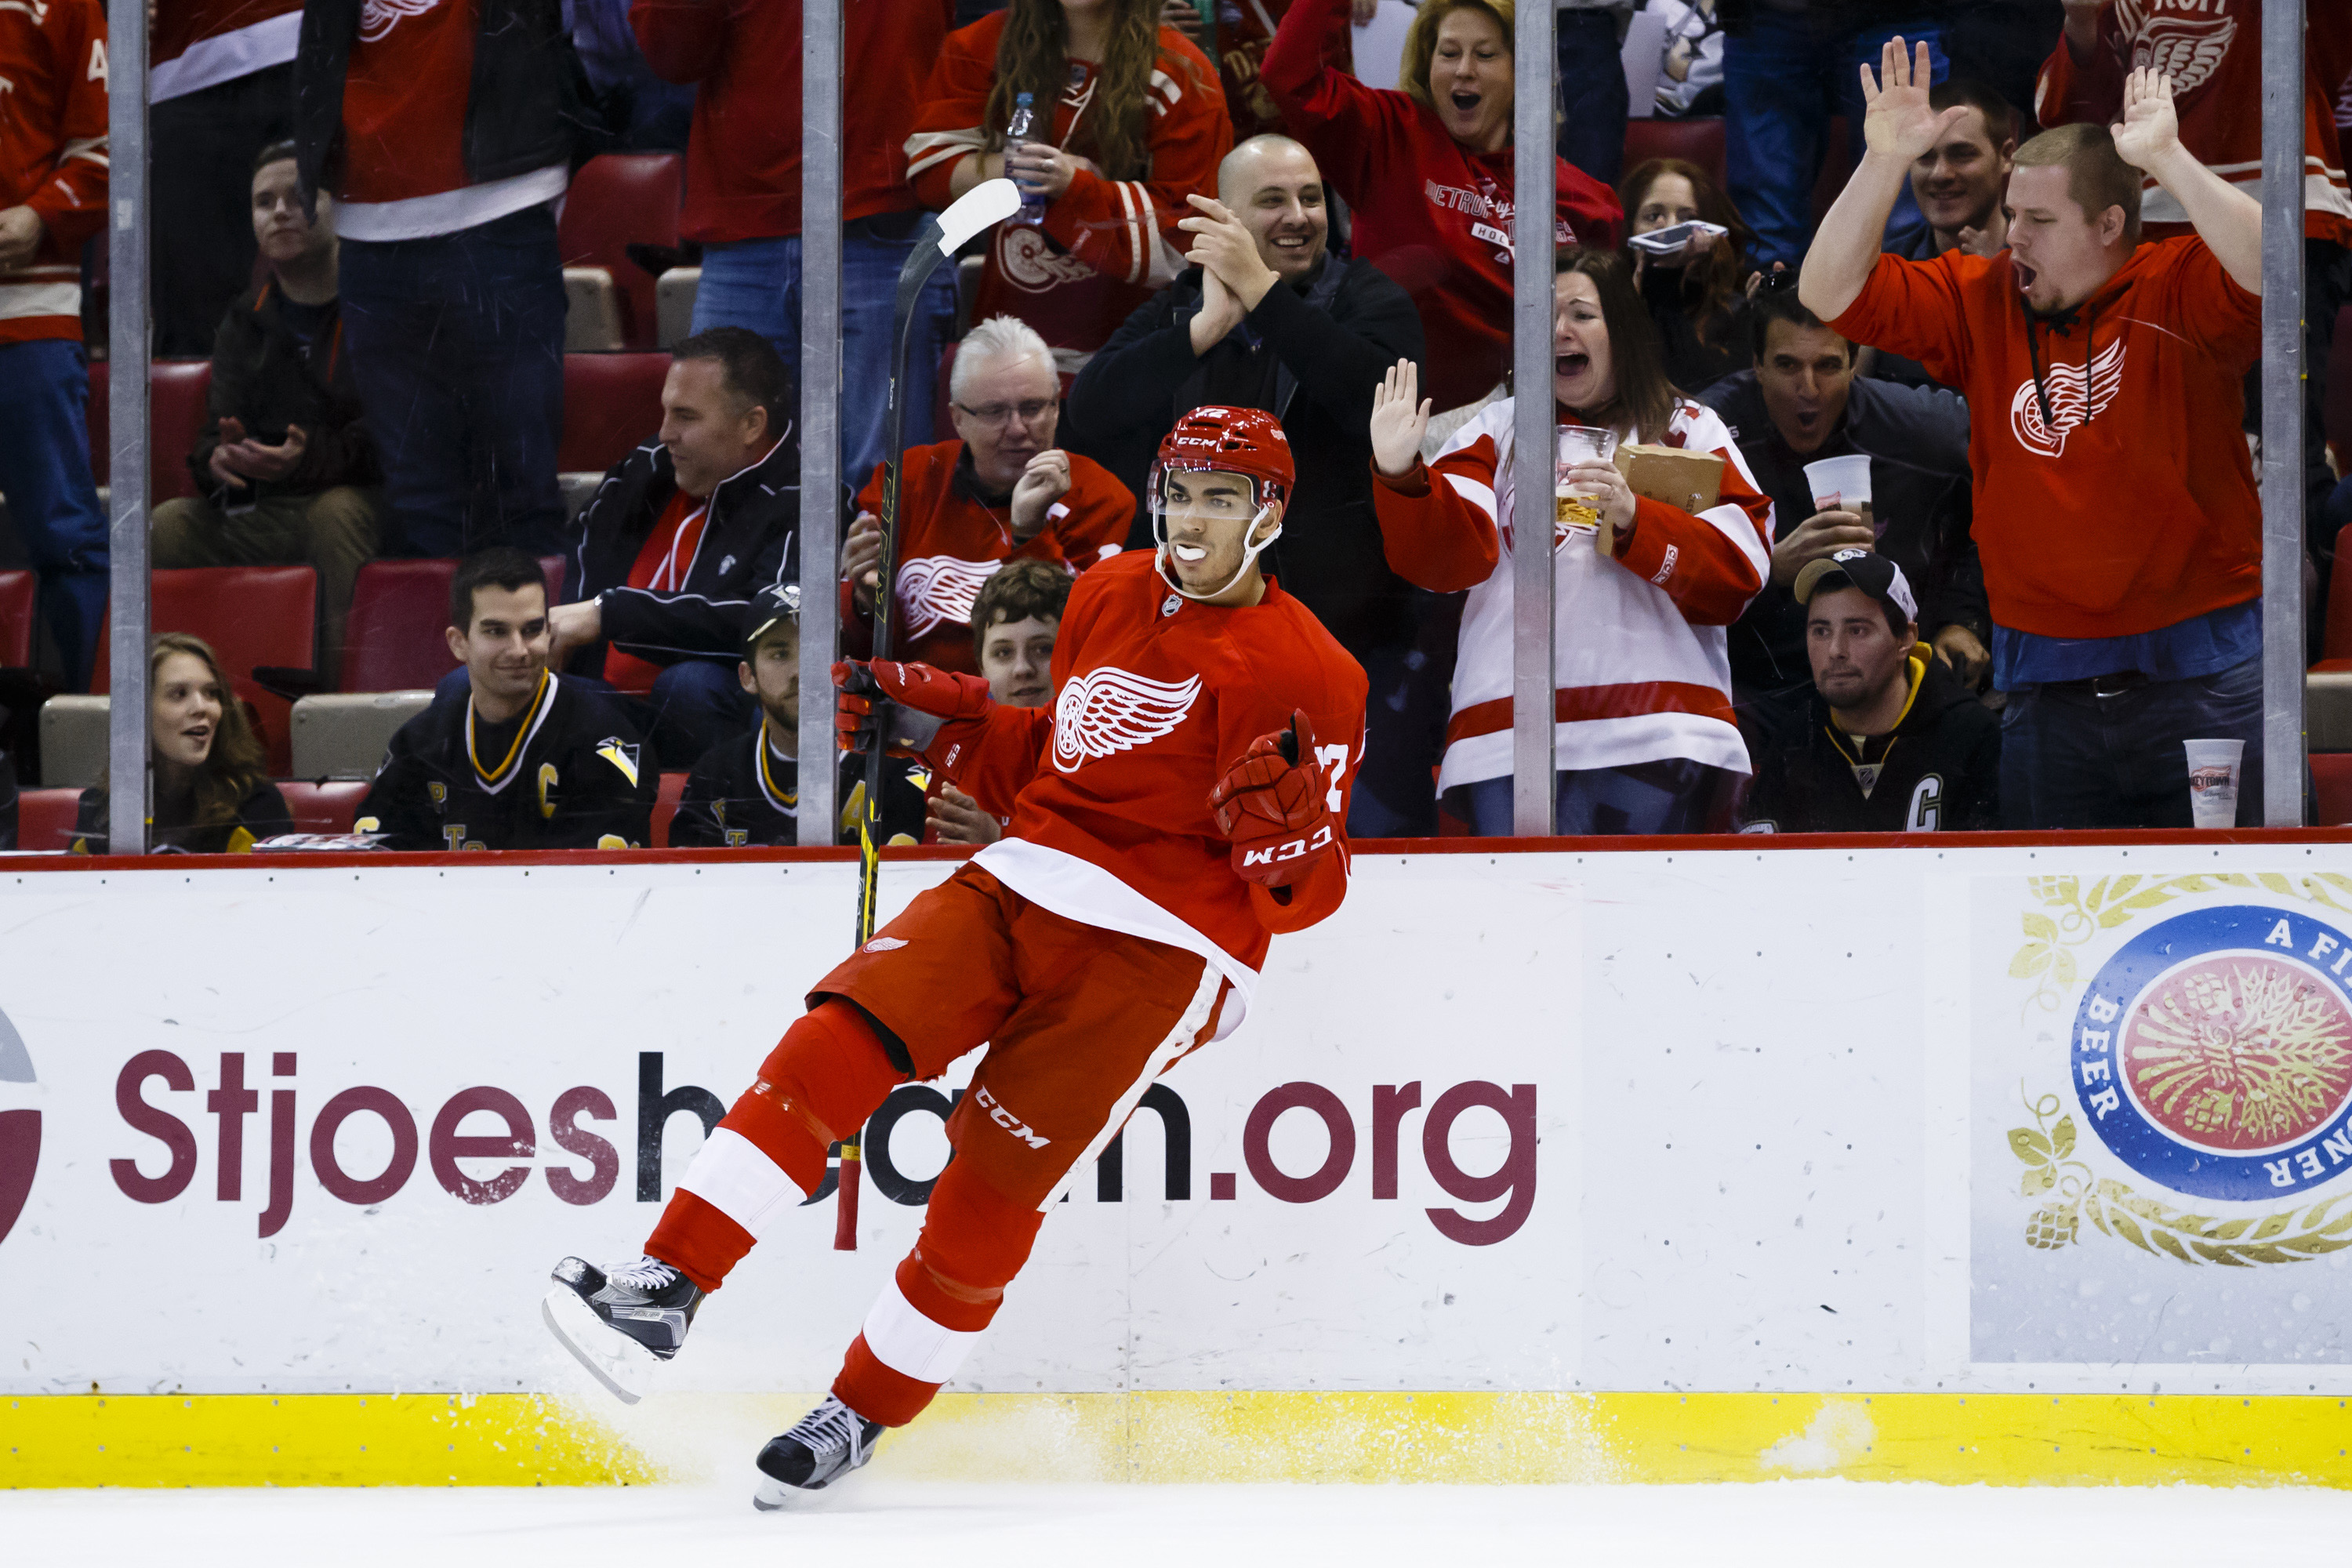 9212135-nhl-pittsburgh-penguins-at-detroit-red-wings